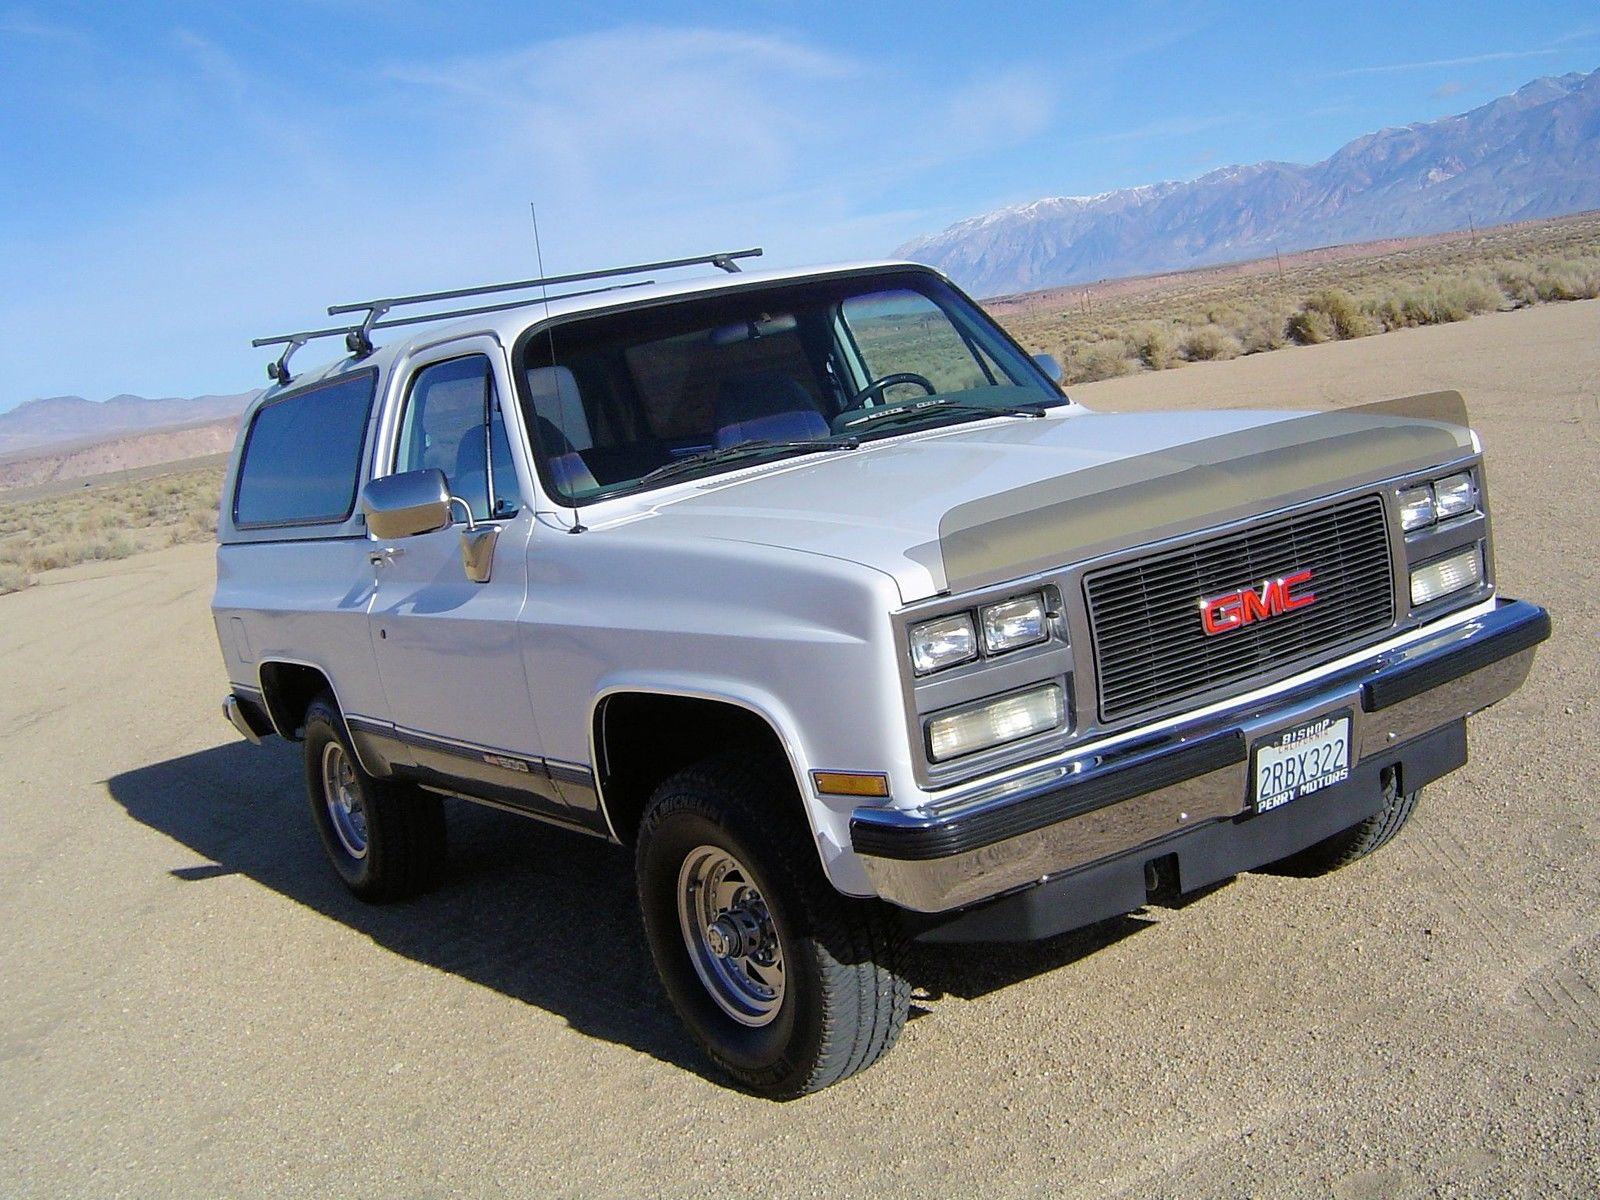 1989 Gmc Jimmy 4x4 California Truck Removable Top No Rust Very Nice Must See For Sale In Bishop United States